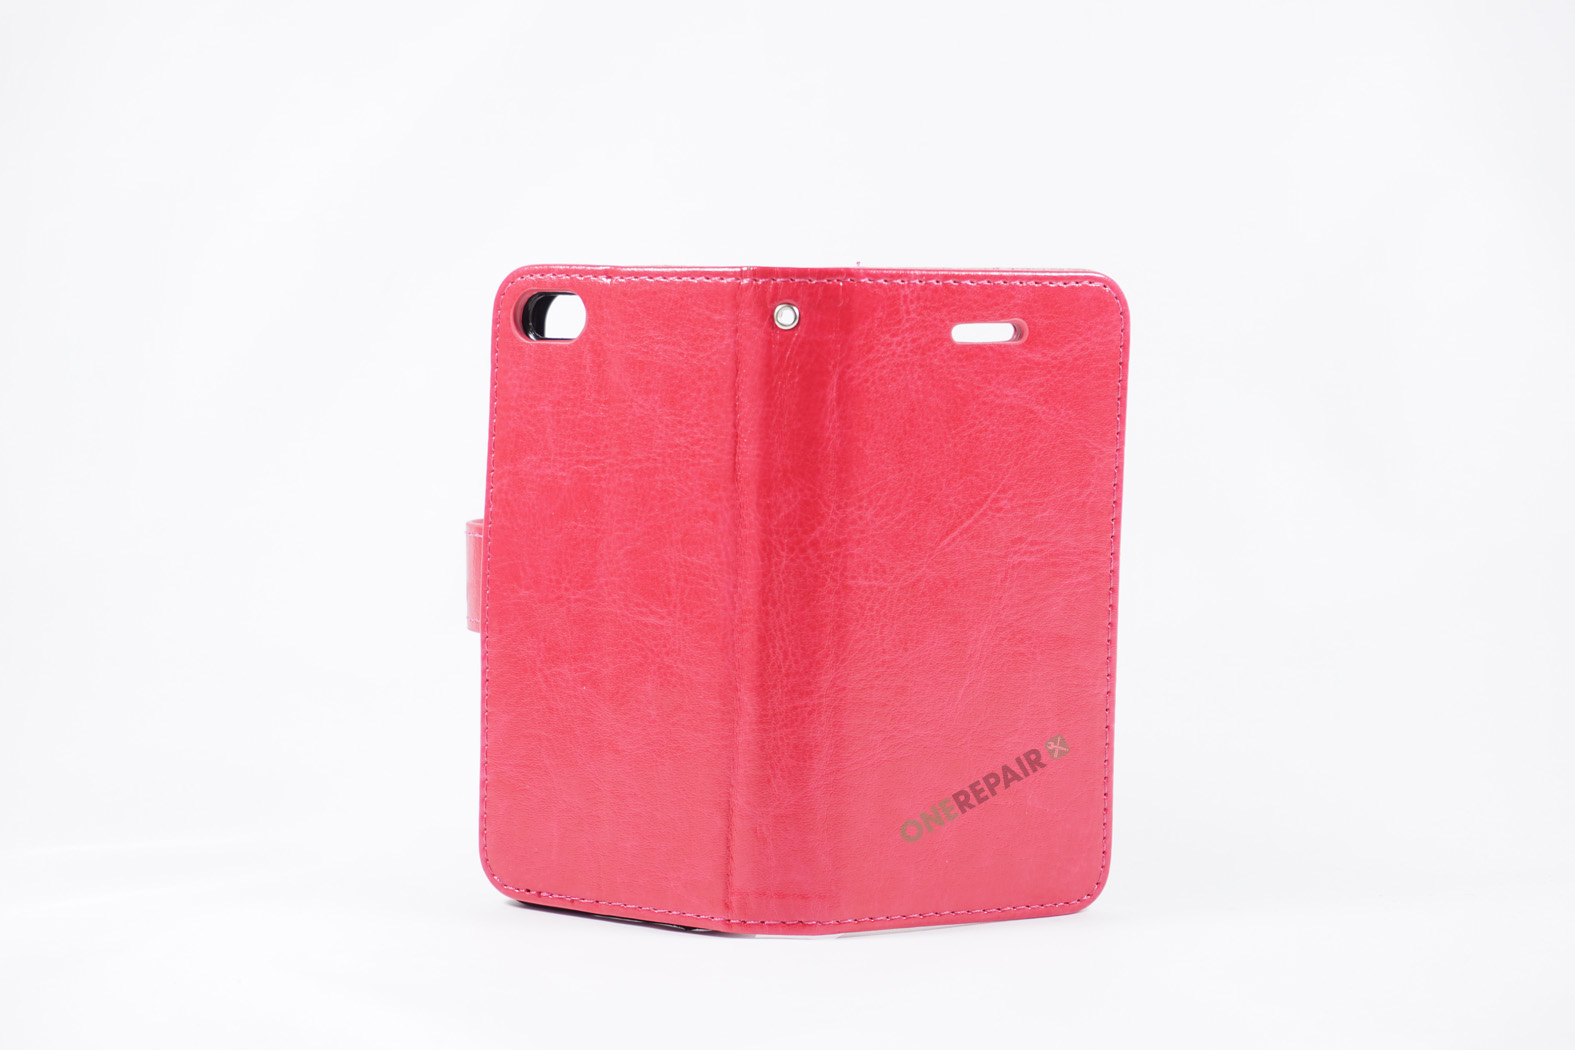 350508_iPhone_5_5S_SE_Flipcover_Cover_Lyseroed_Pink_Pung_OneRepair_WM_00003